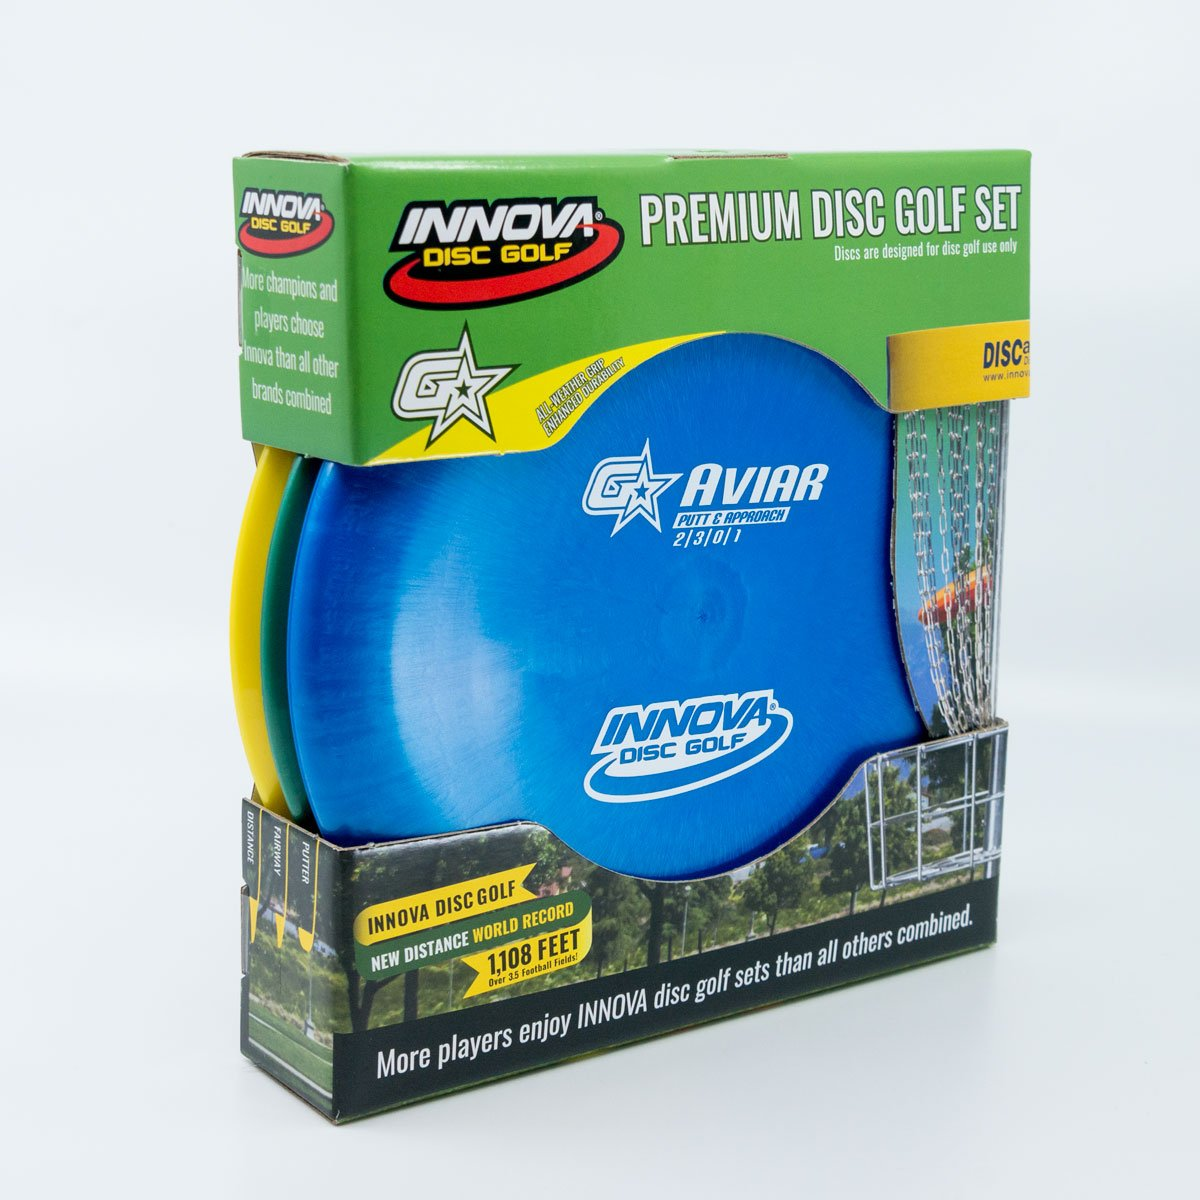 Innova Discs GStar Premium 3-Disc Beginner Disc Golf Set by Innova